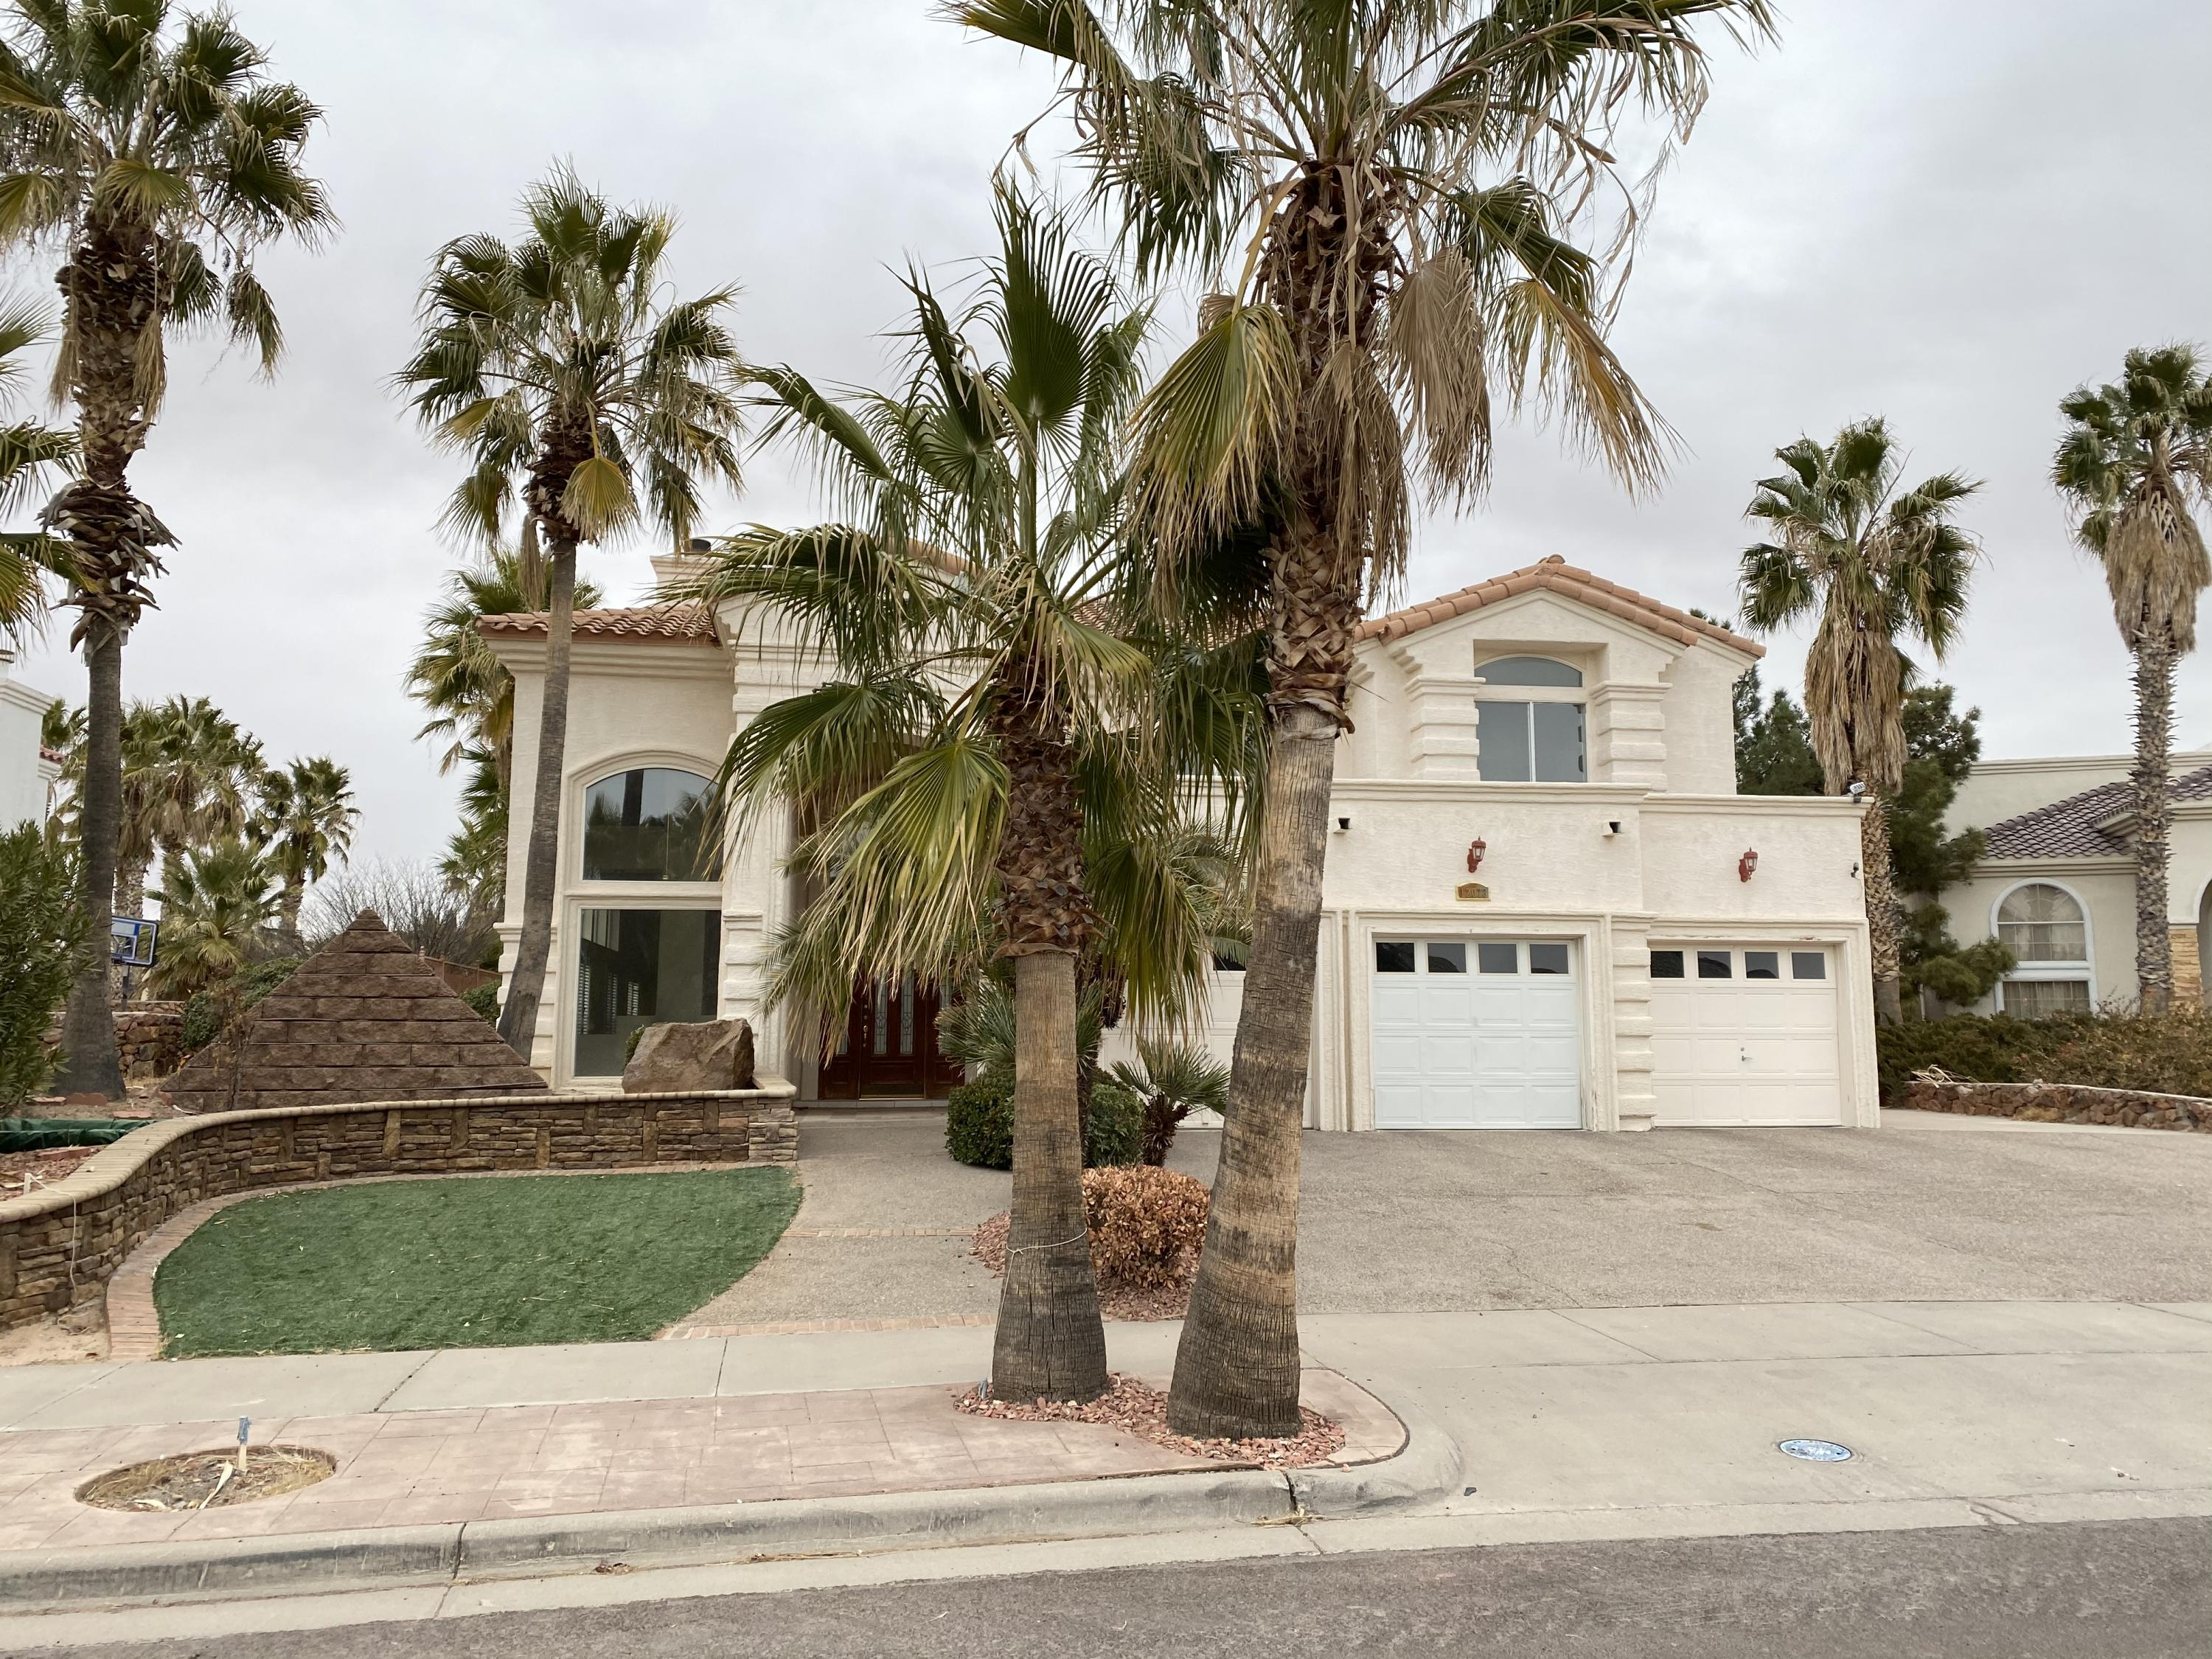 12073 Paseo De Amor, El Paso, Texas 79936, 5 Bedrooms Bedrooms, ,4 BathroomsBathrooms,Residential,For sale,Paseo De Amor,839763